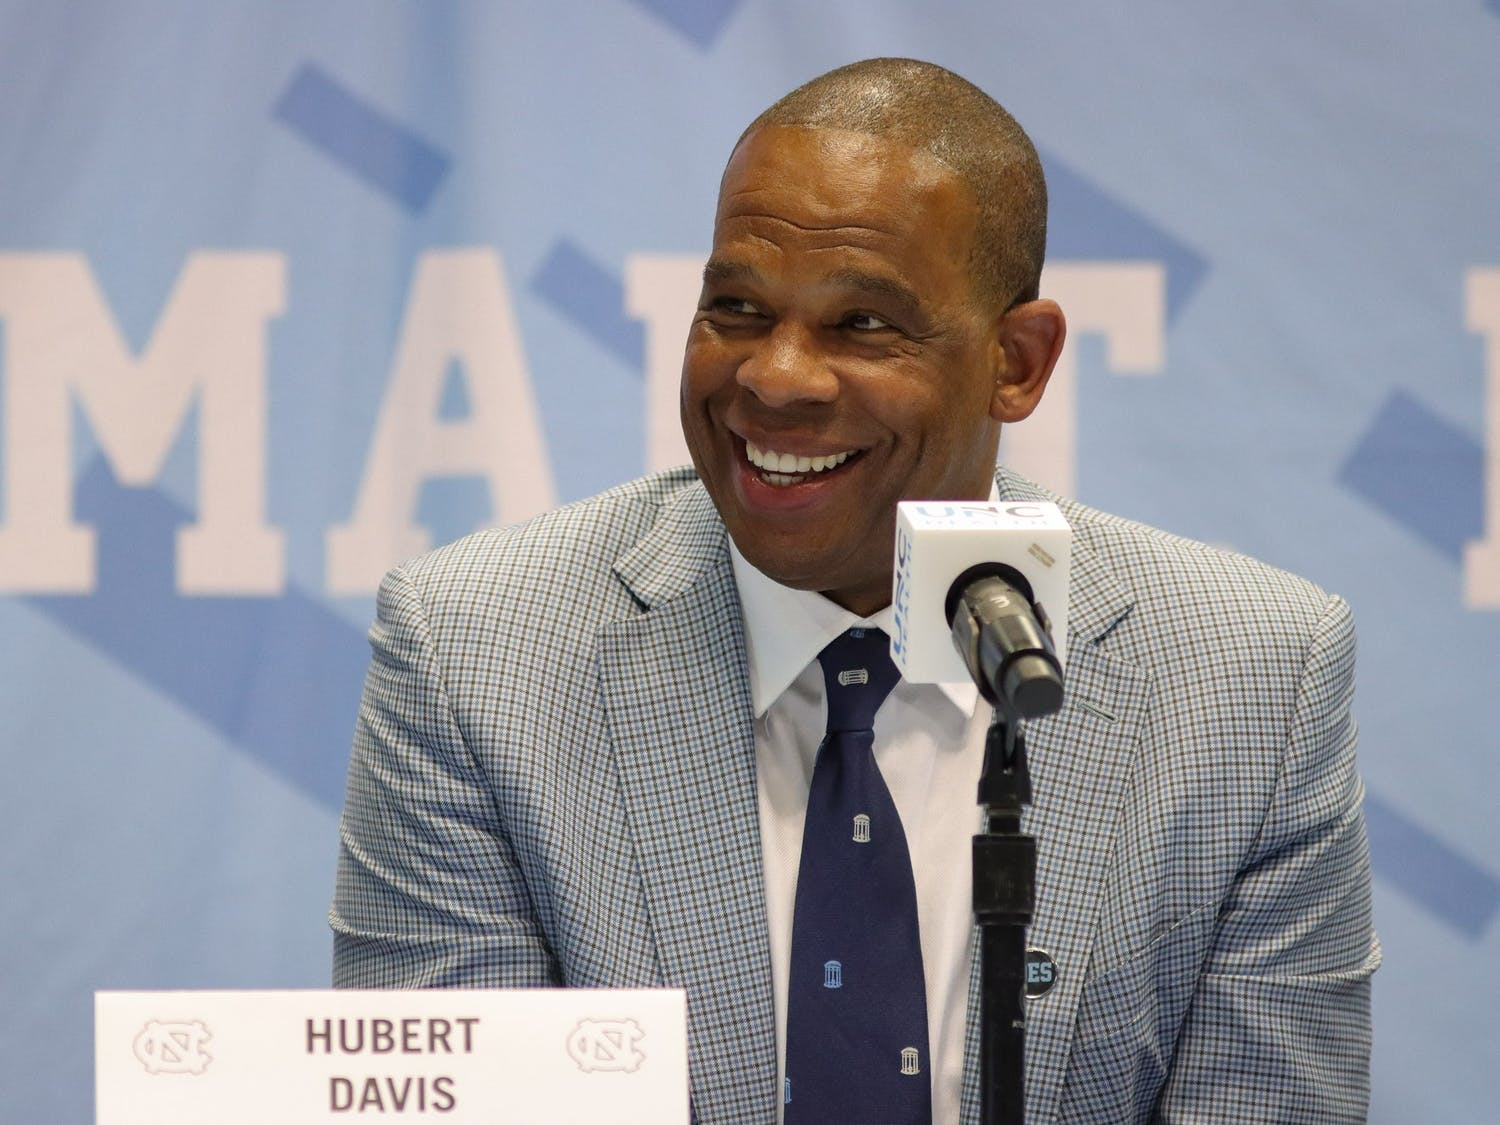 """Hubert Davis, the new head coach of UNC men's basketball, speaks at a press conference on Tuesday, April 6, 2021. """"North Carolina is the standard. There's nobody that has family, nobody that's an example of togetherness and family than here at North Carolina,"""" said Davis."""